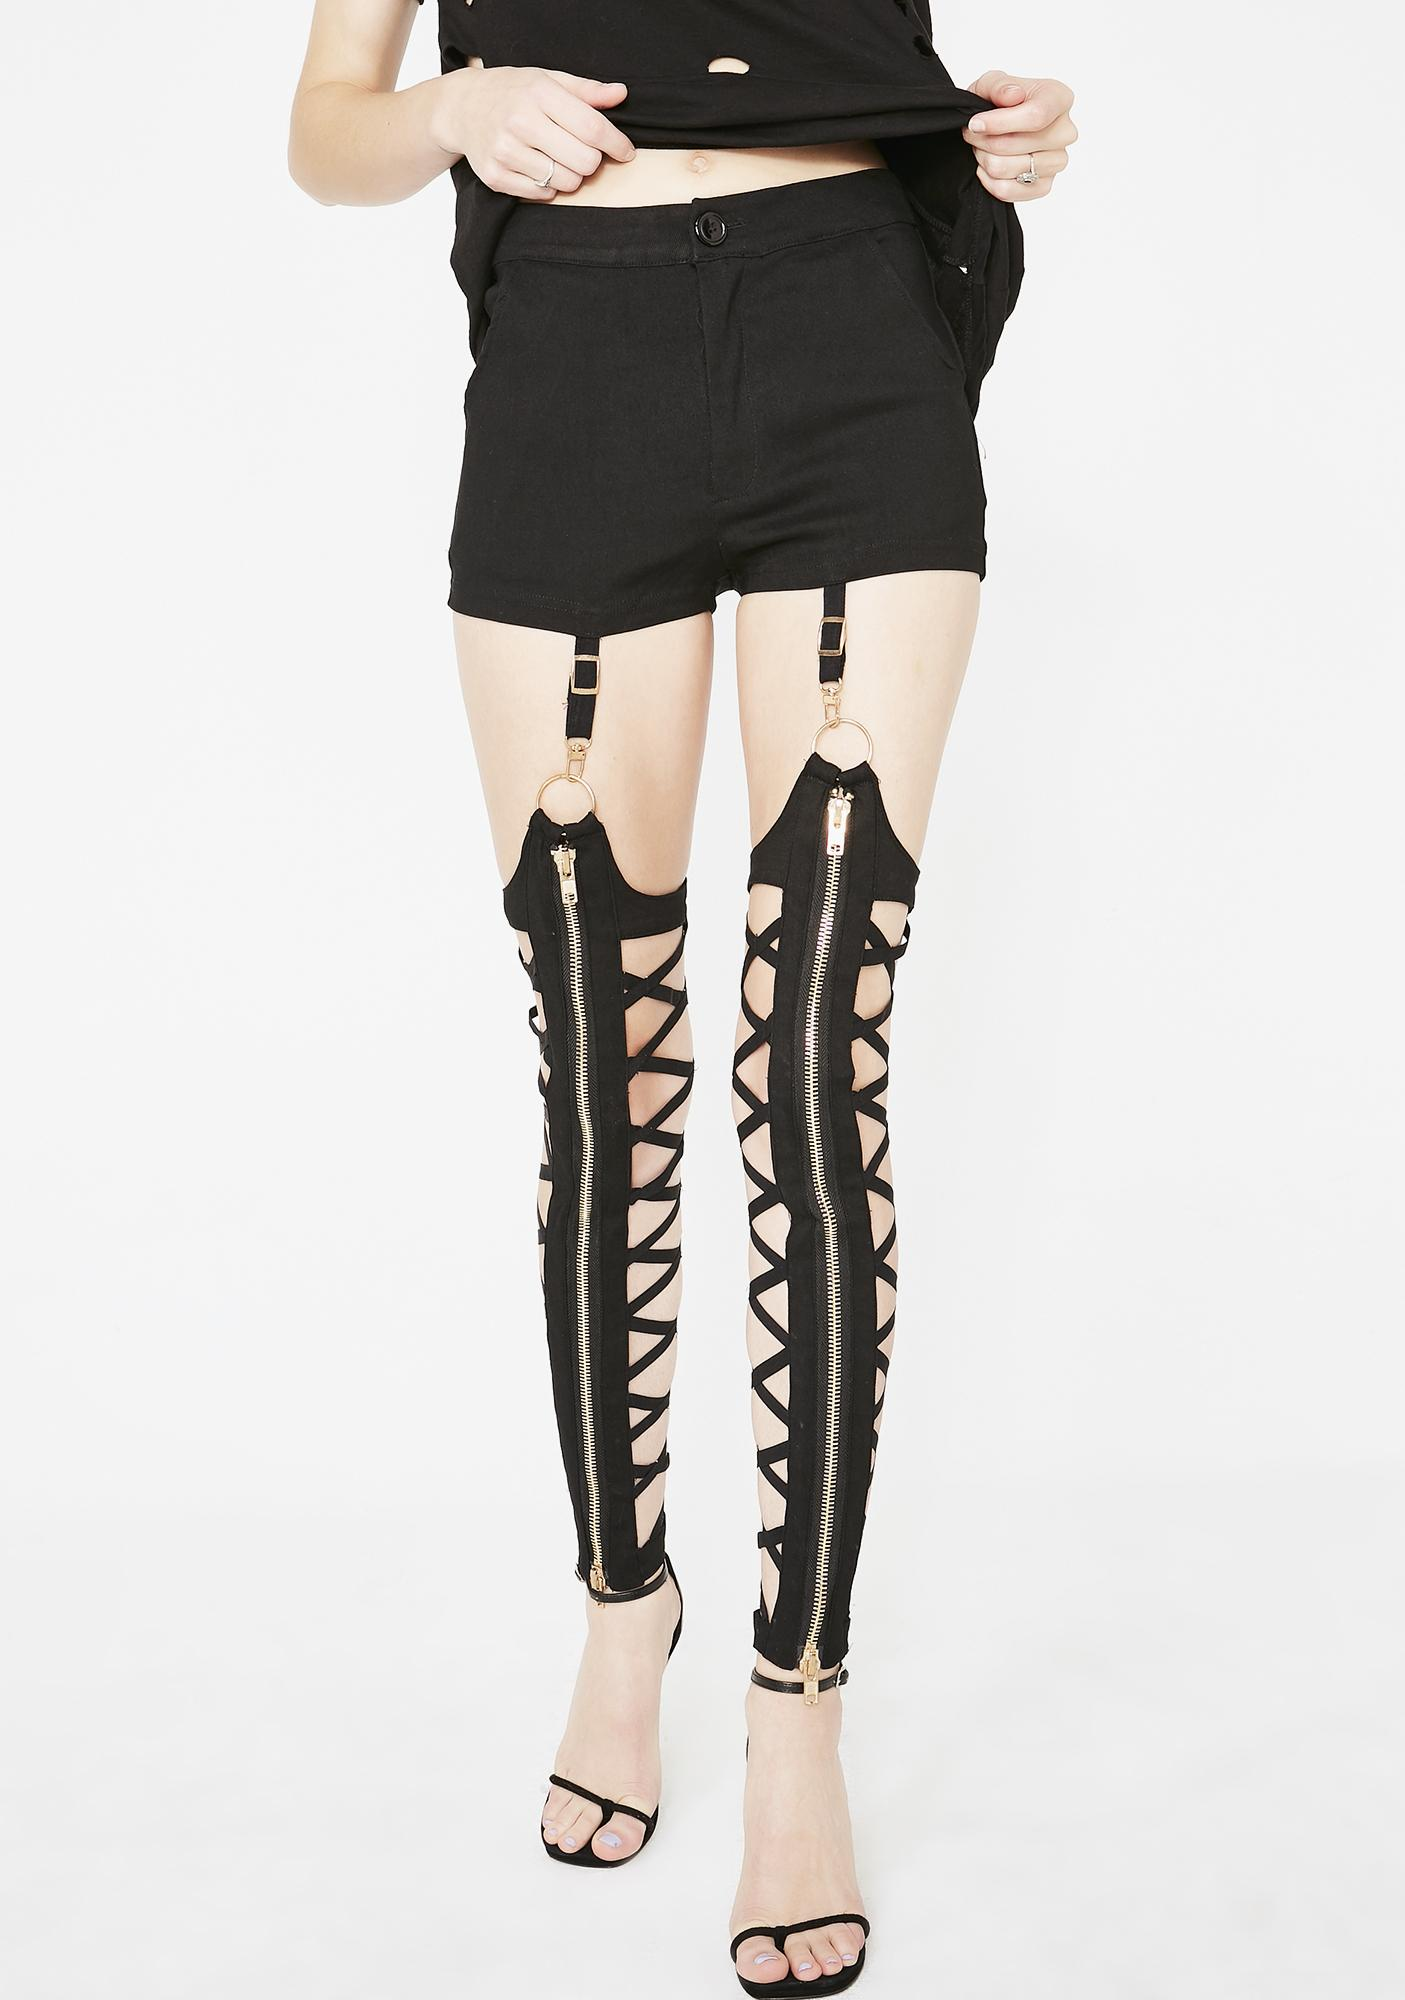 Hardcore Diva Garter Leggings